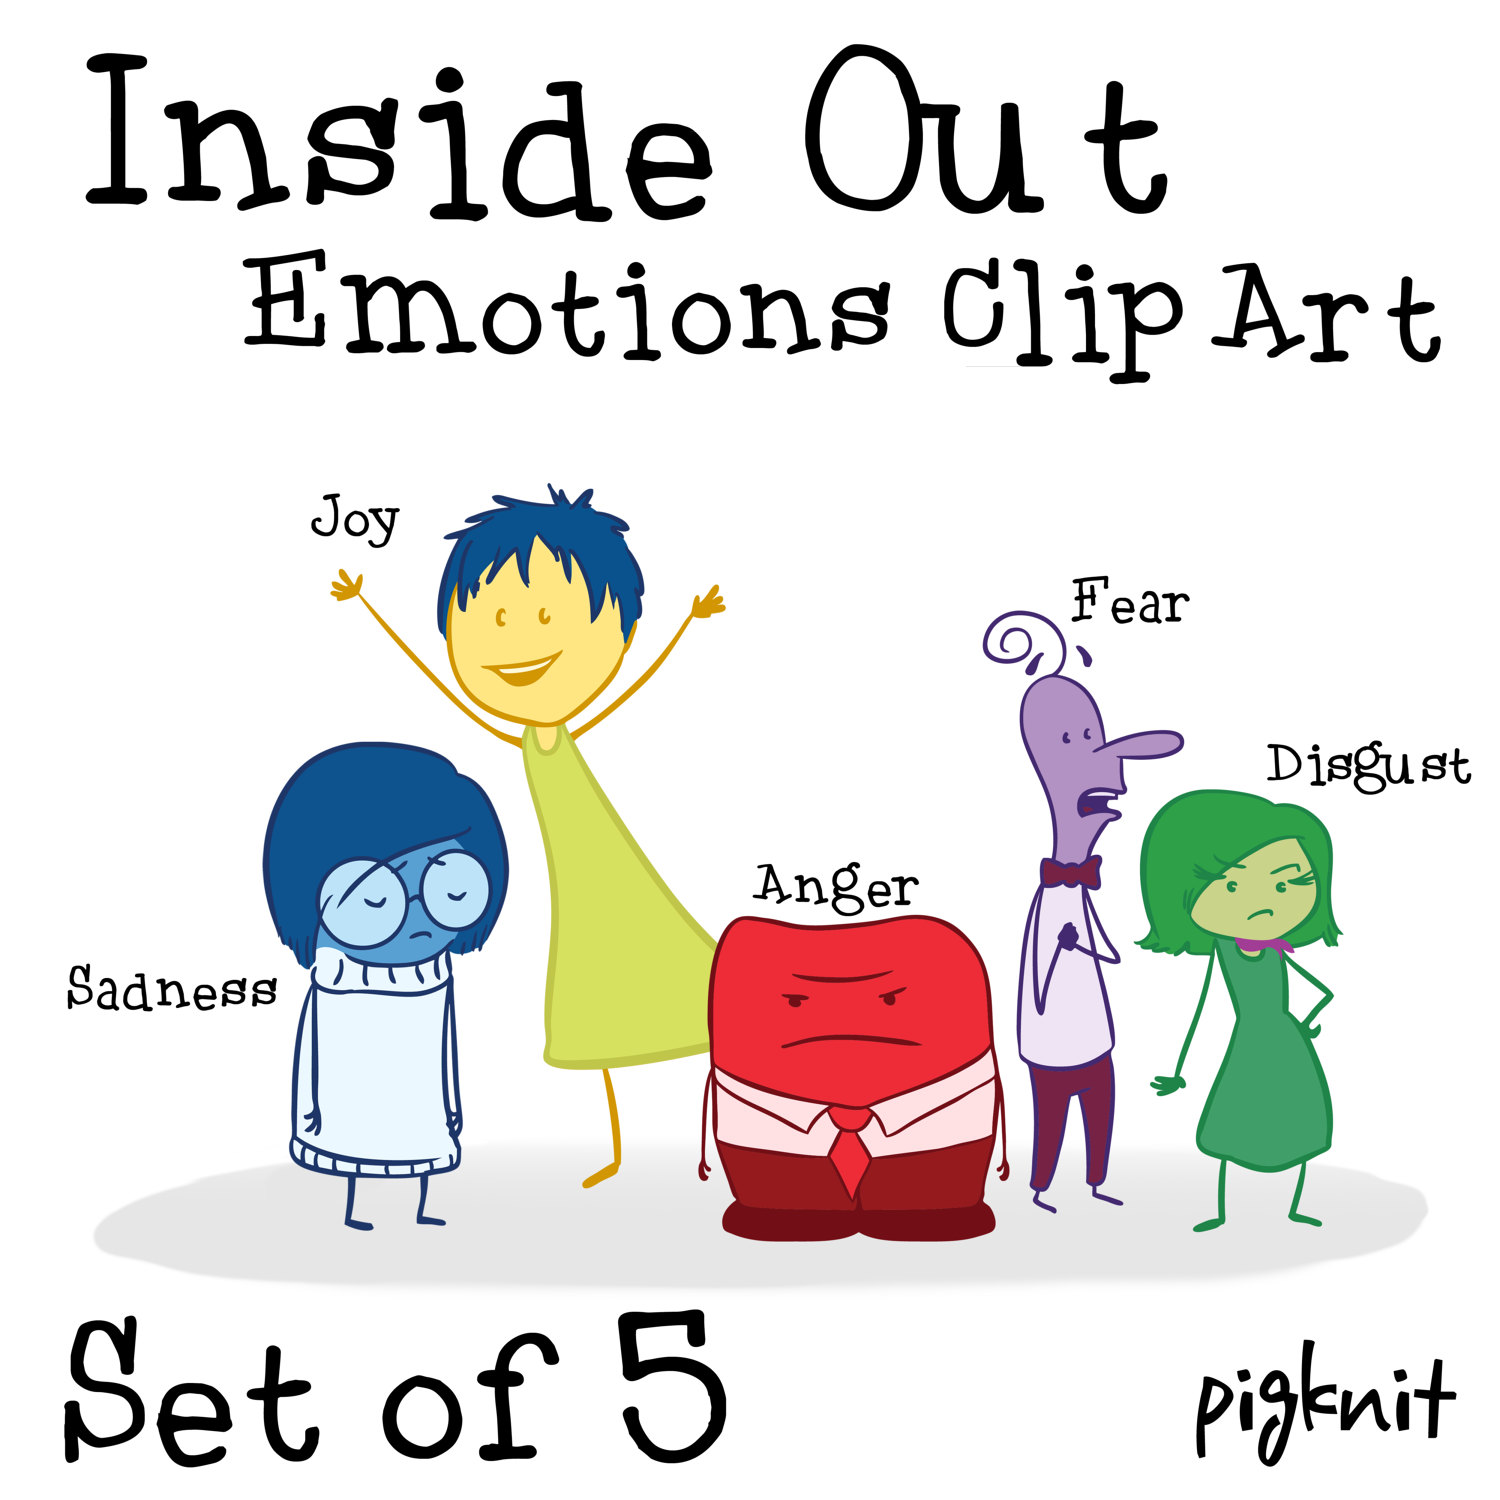 1500x1500 Inside Out Movie Clip Art, Emotion Clip Art, Inside Out Characters